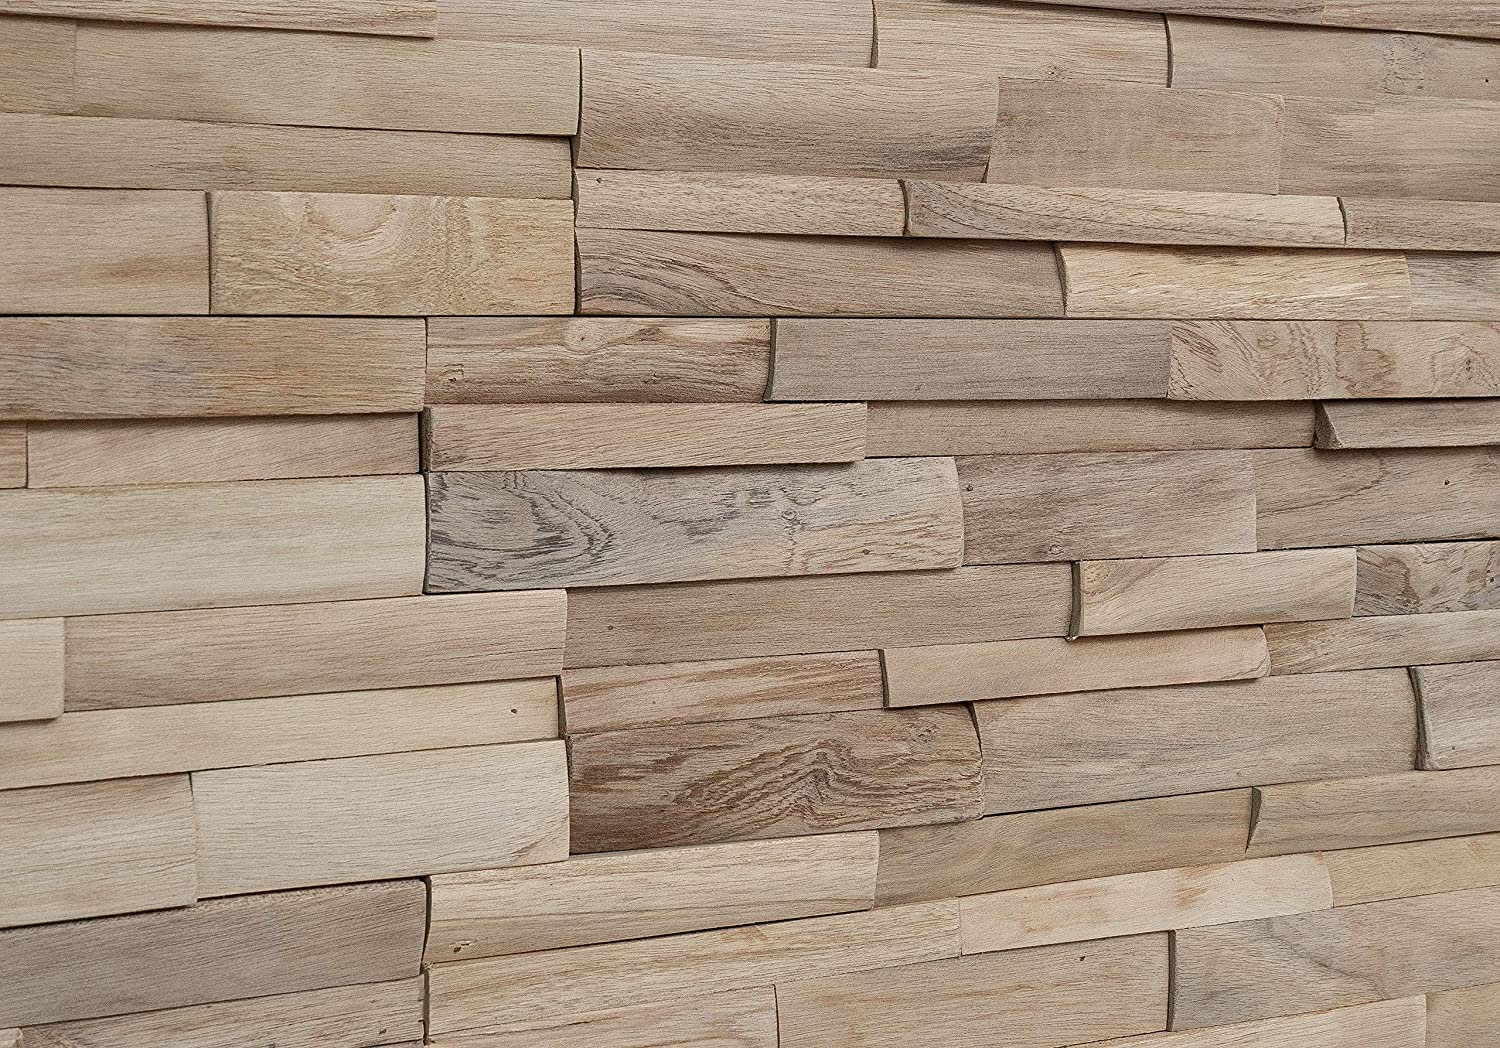 WoodyWalls 3D Wall Panels   Wood Planks are Made from 100% Teak   Each Wood Panel is Handmade and Unique   Premium Set of 10 3D Wall Decor Panels   DIY Wood Panels (9.5 sq.ft. per Box) Ivory